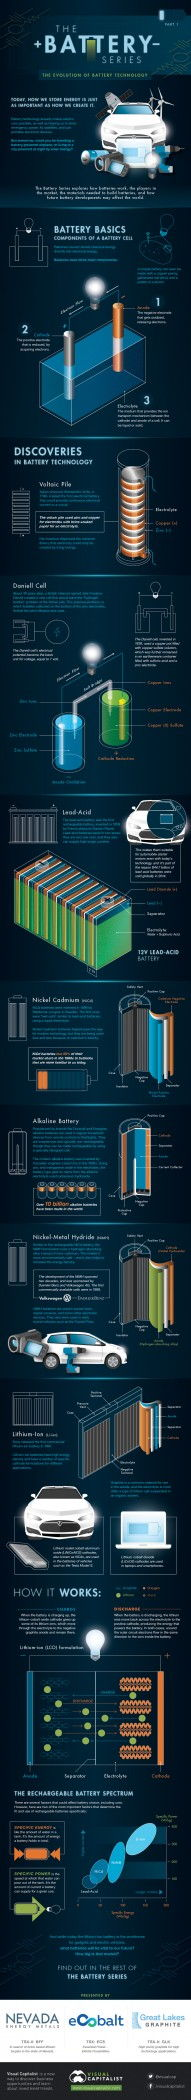 The Evolution of Battery Technology